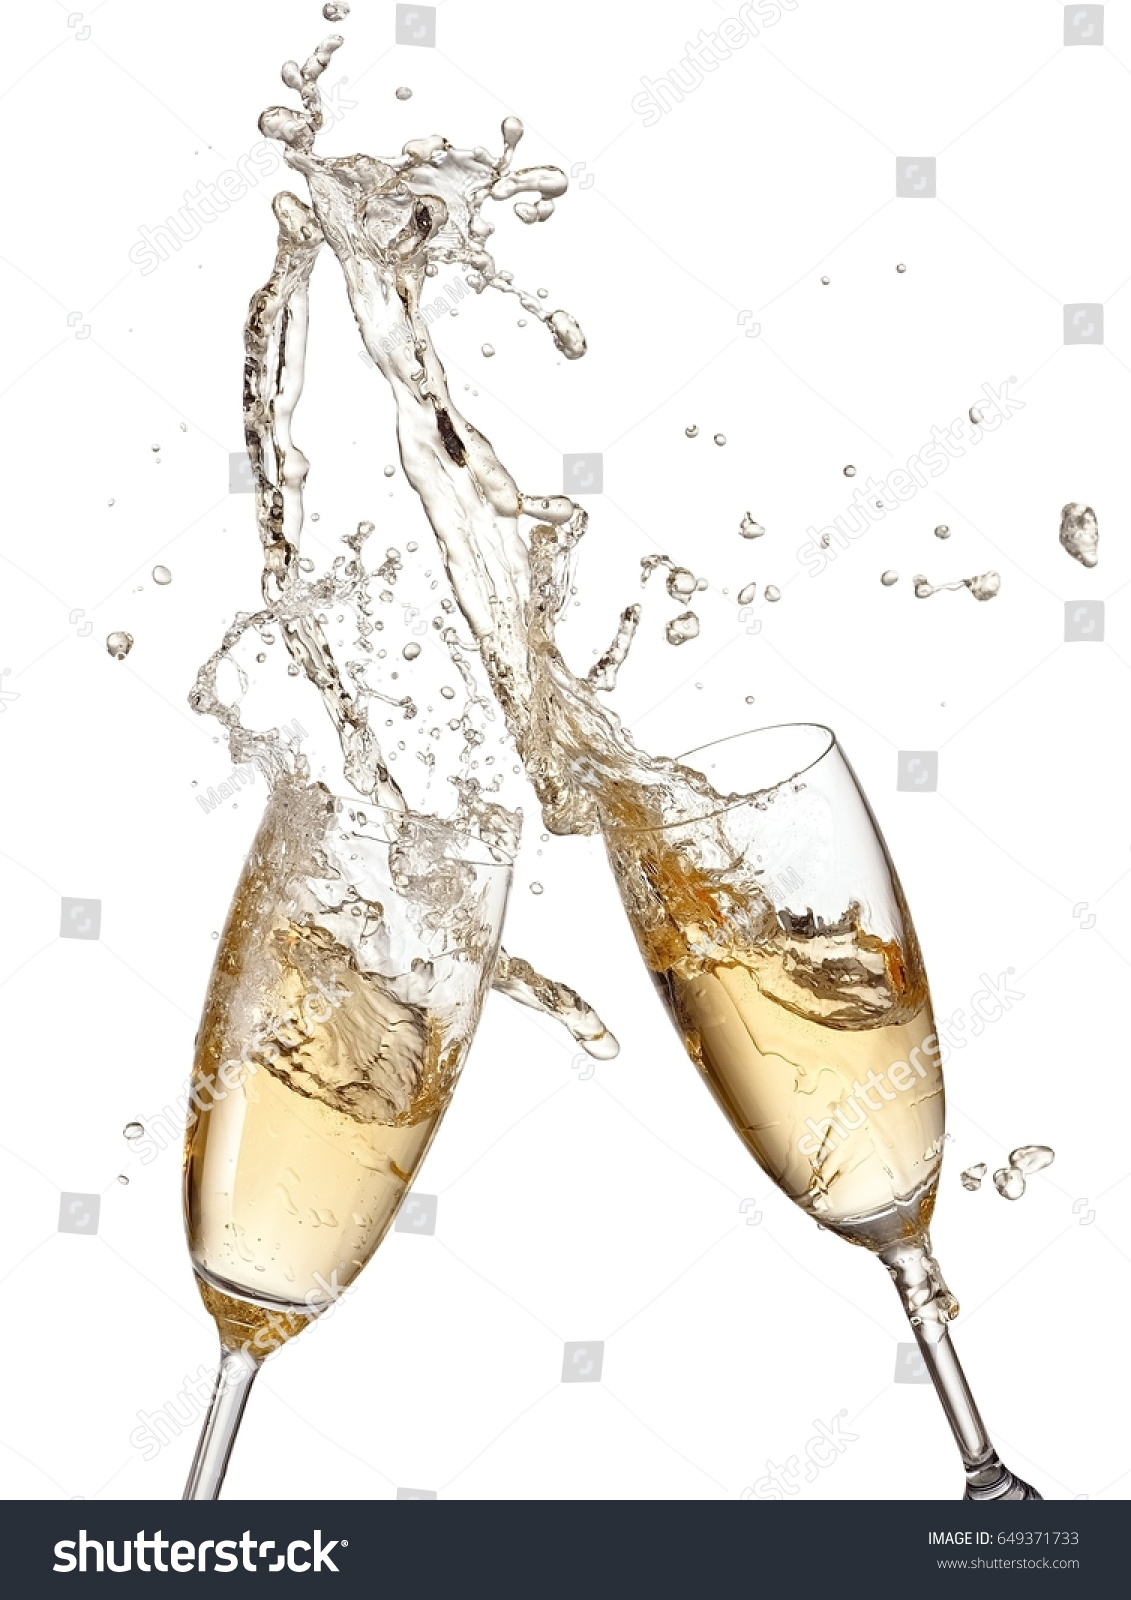 Champagne Splash Png (108+ images in Collection) Page 2.